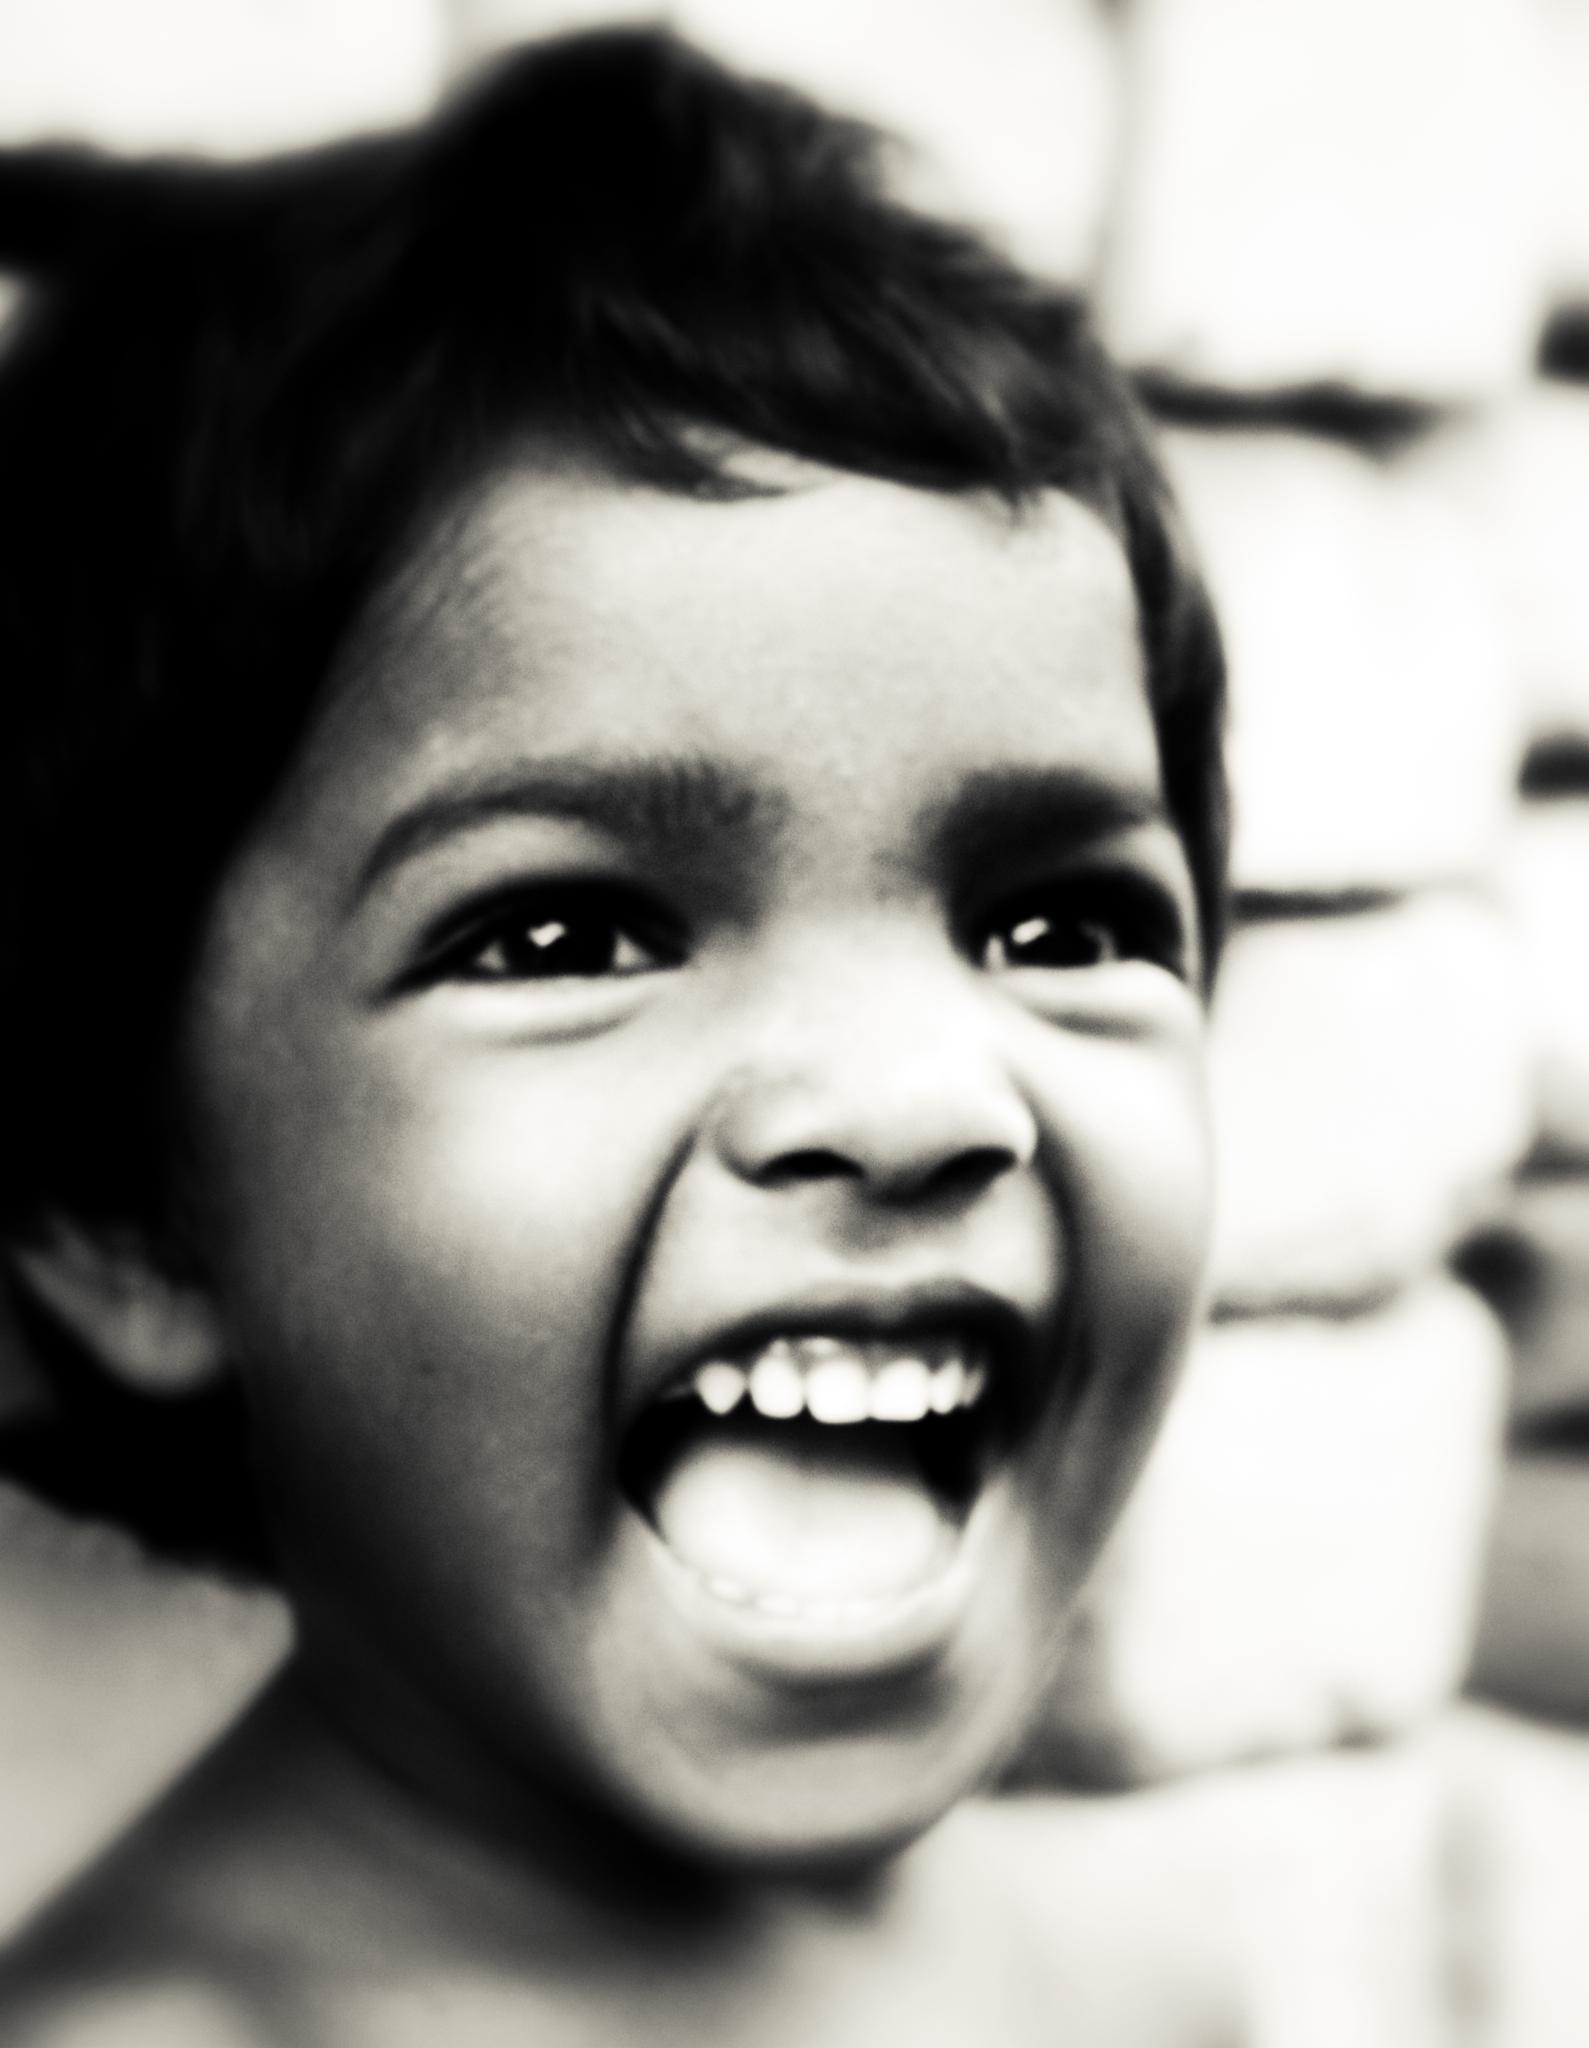 smile by sonali.si.7